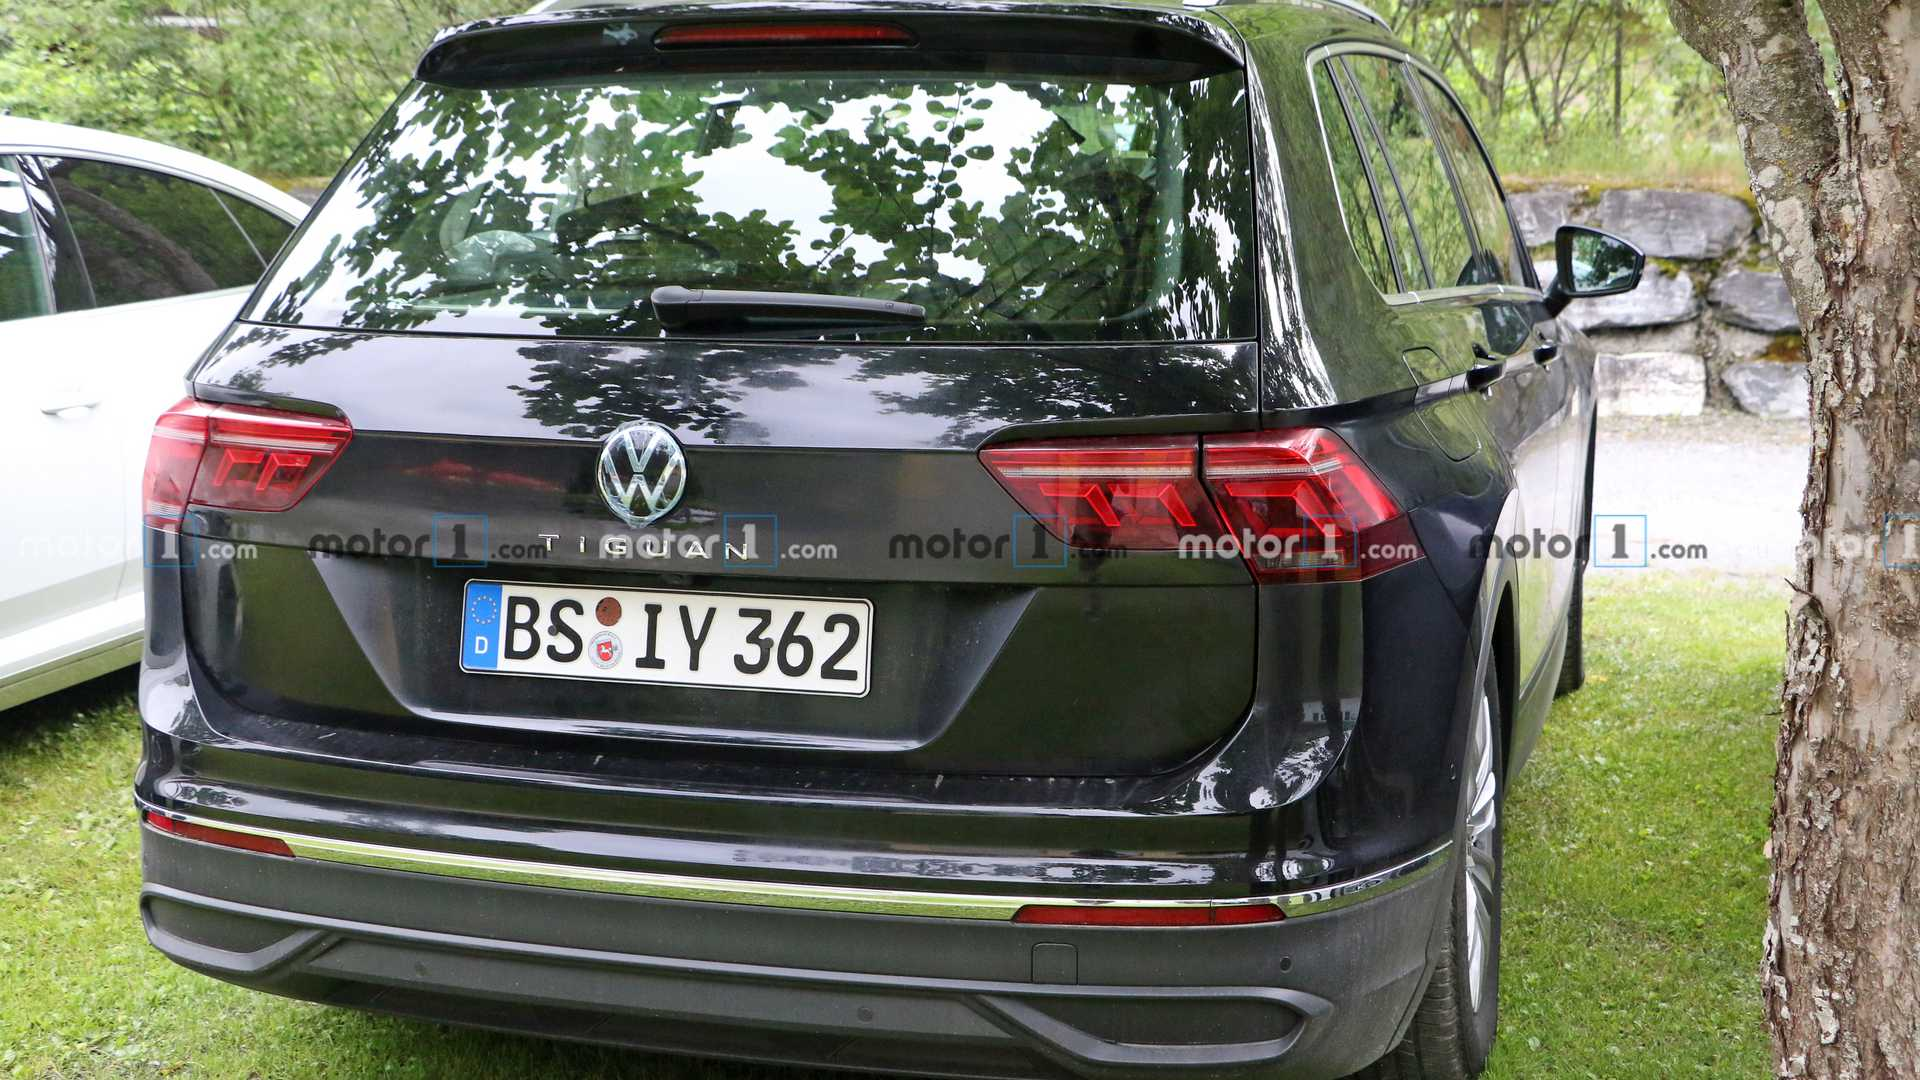 2020 - [Volkswagen] Tiguan II restylé  - Page 2 2021-vw-tiguan-facelift-spy-photo